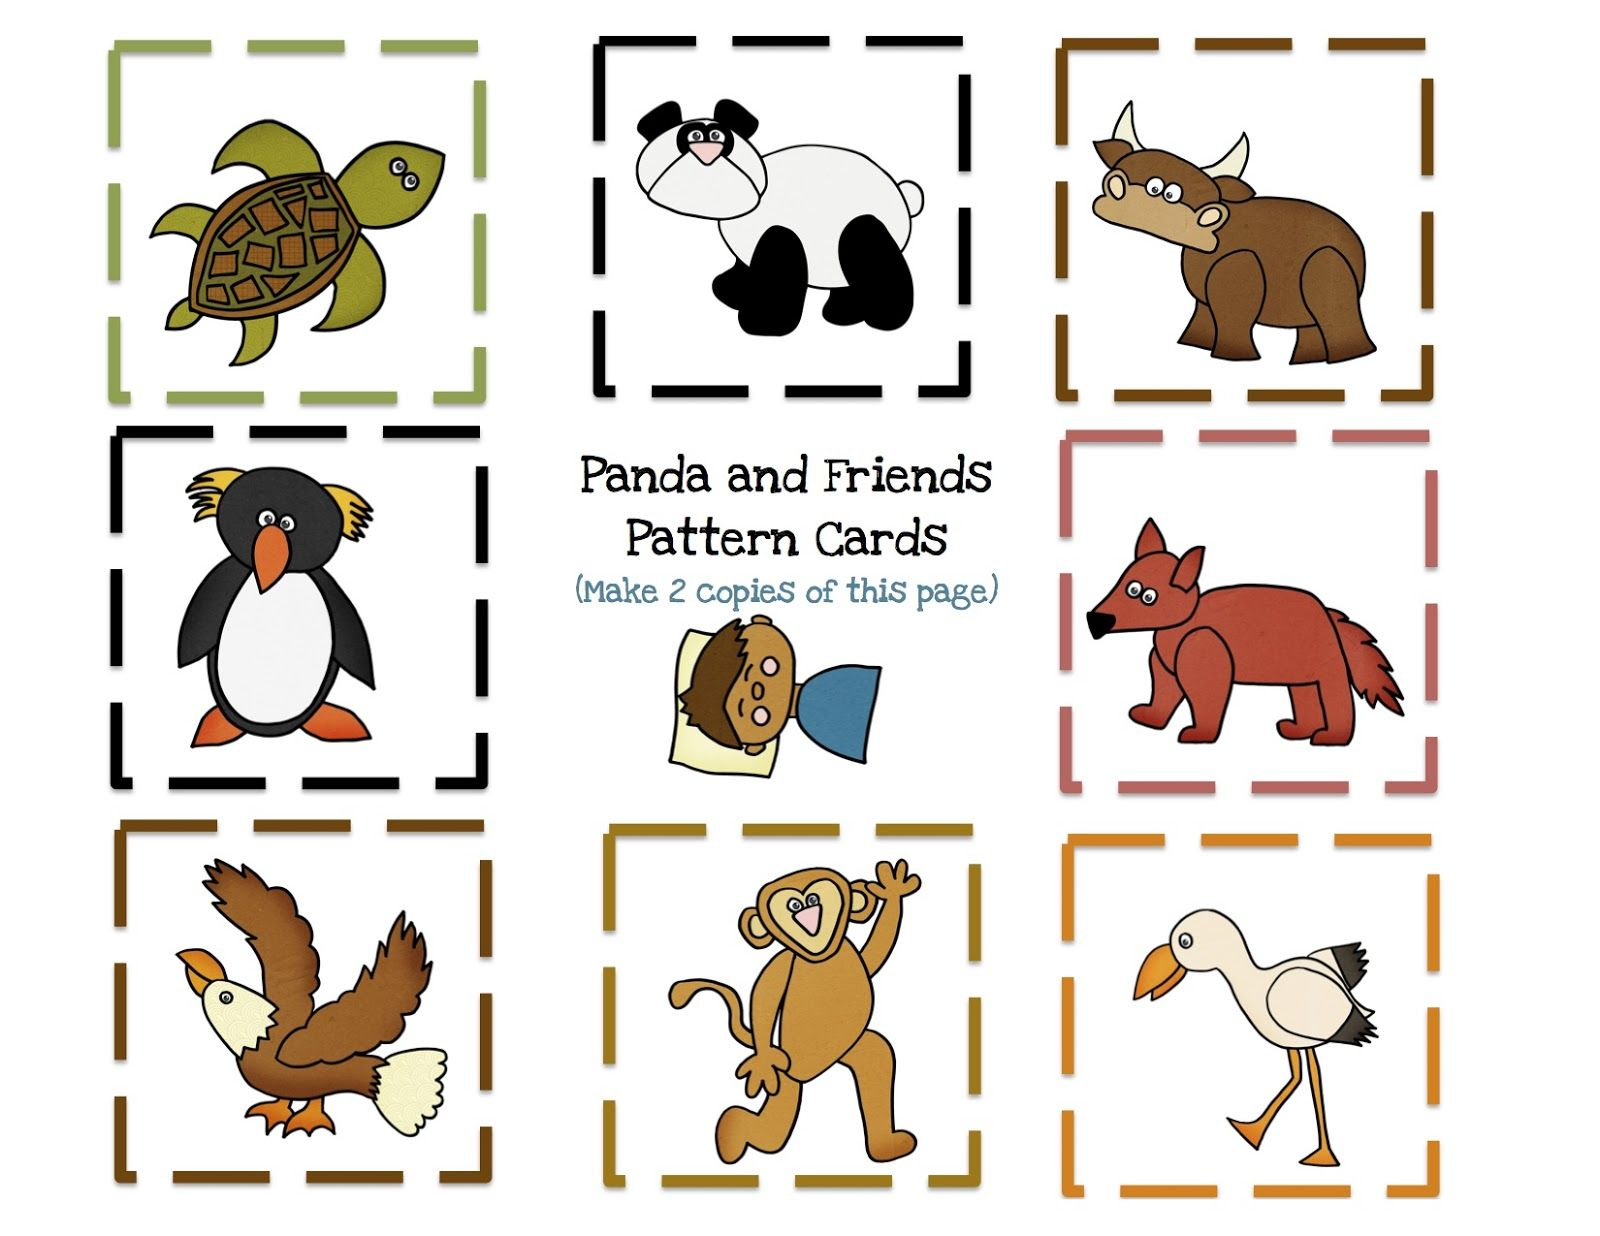 Panda Friends 8 Pattern Cards Template 1 600 1 236